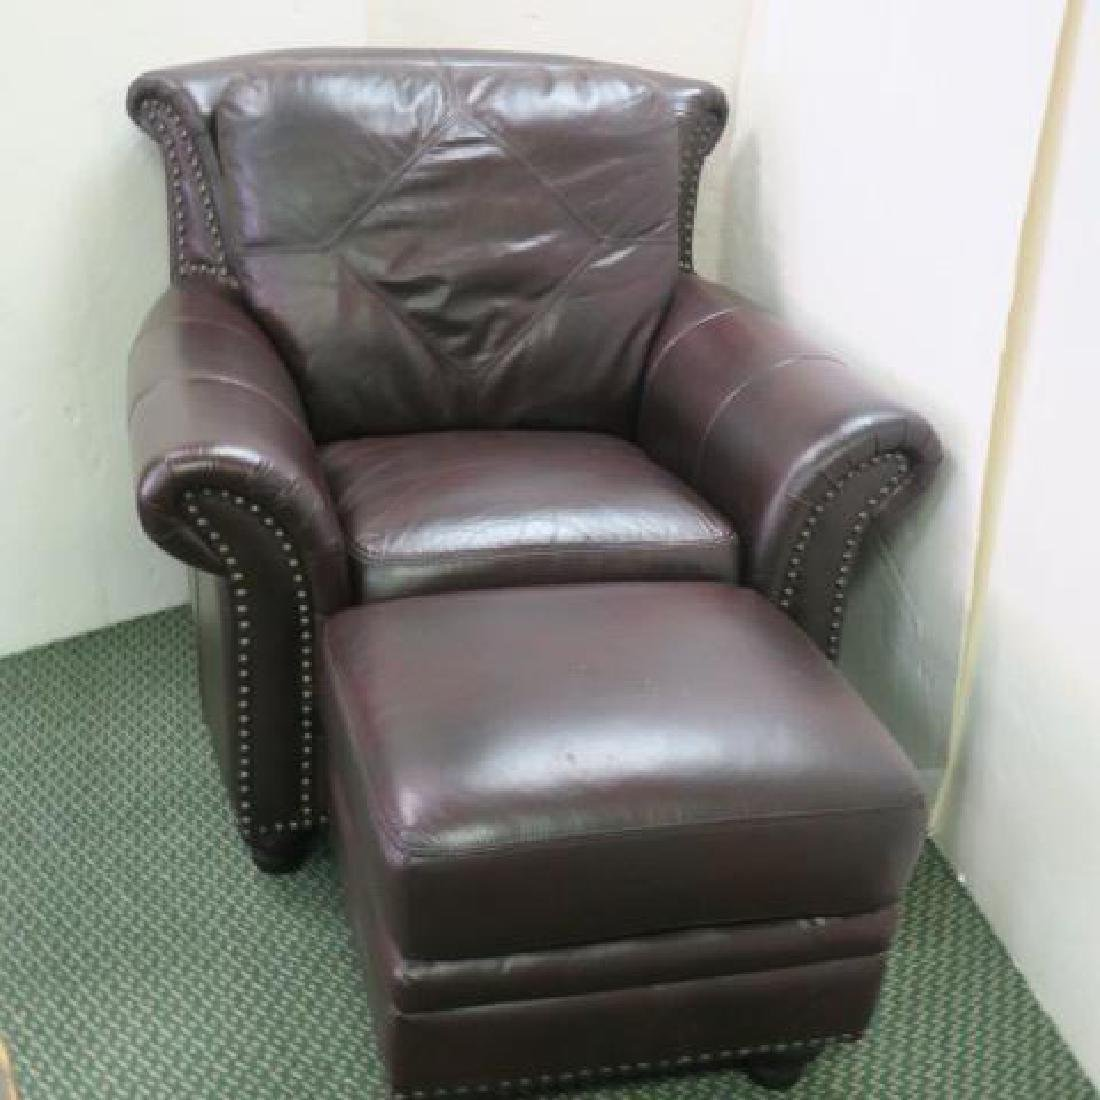 GRAMERCY PARK Leather Arm Chair and Ottoman: